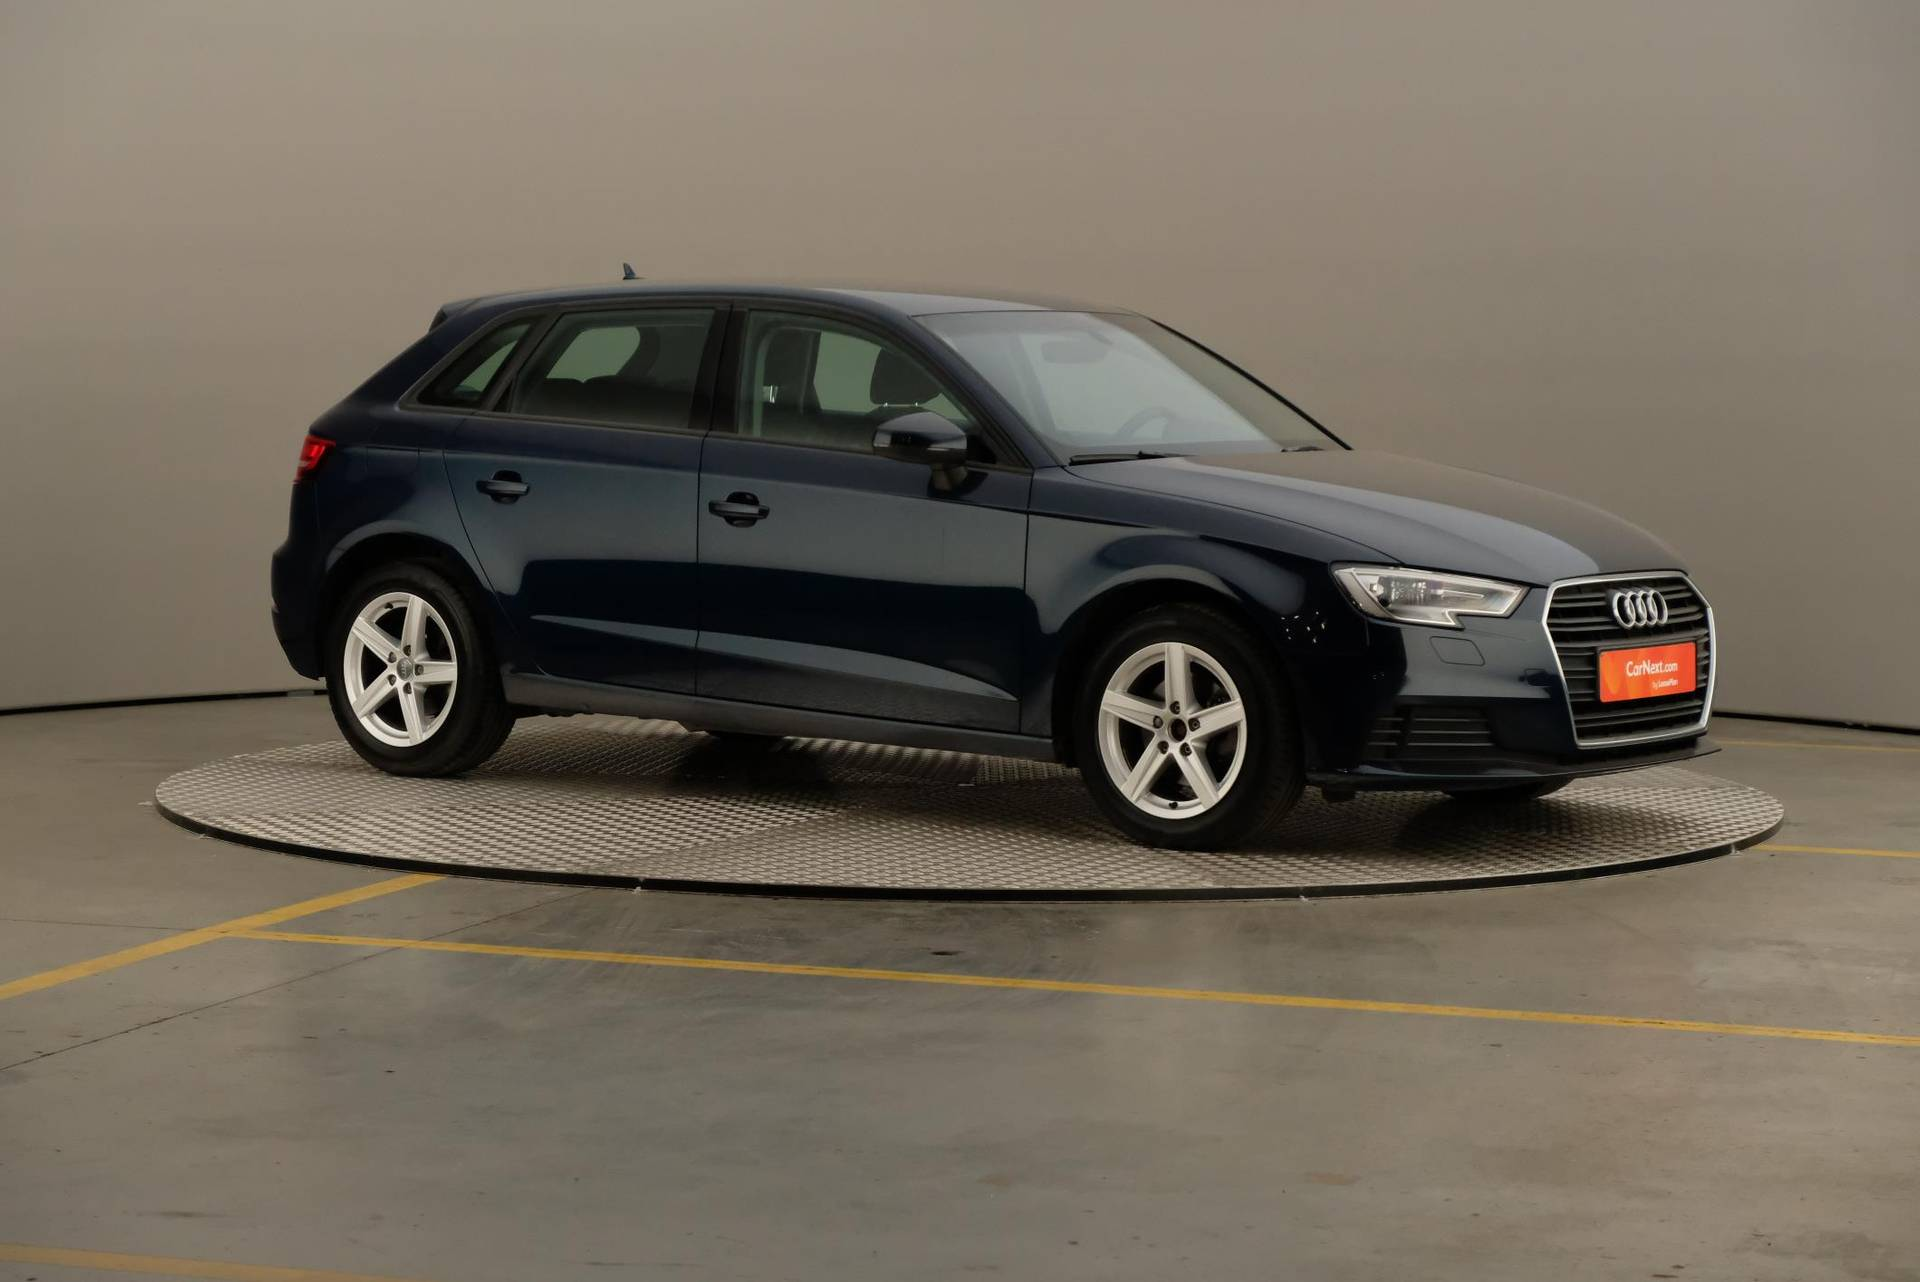 Audi A3 1.6 TDi Pack Intuition Plus Euro6, 360-image26